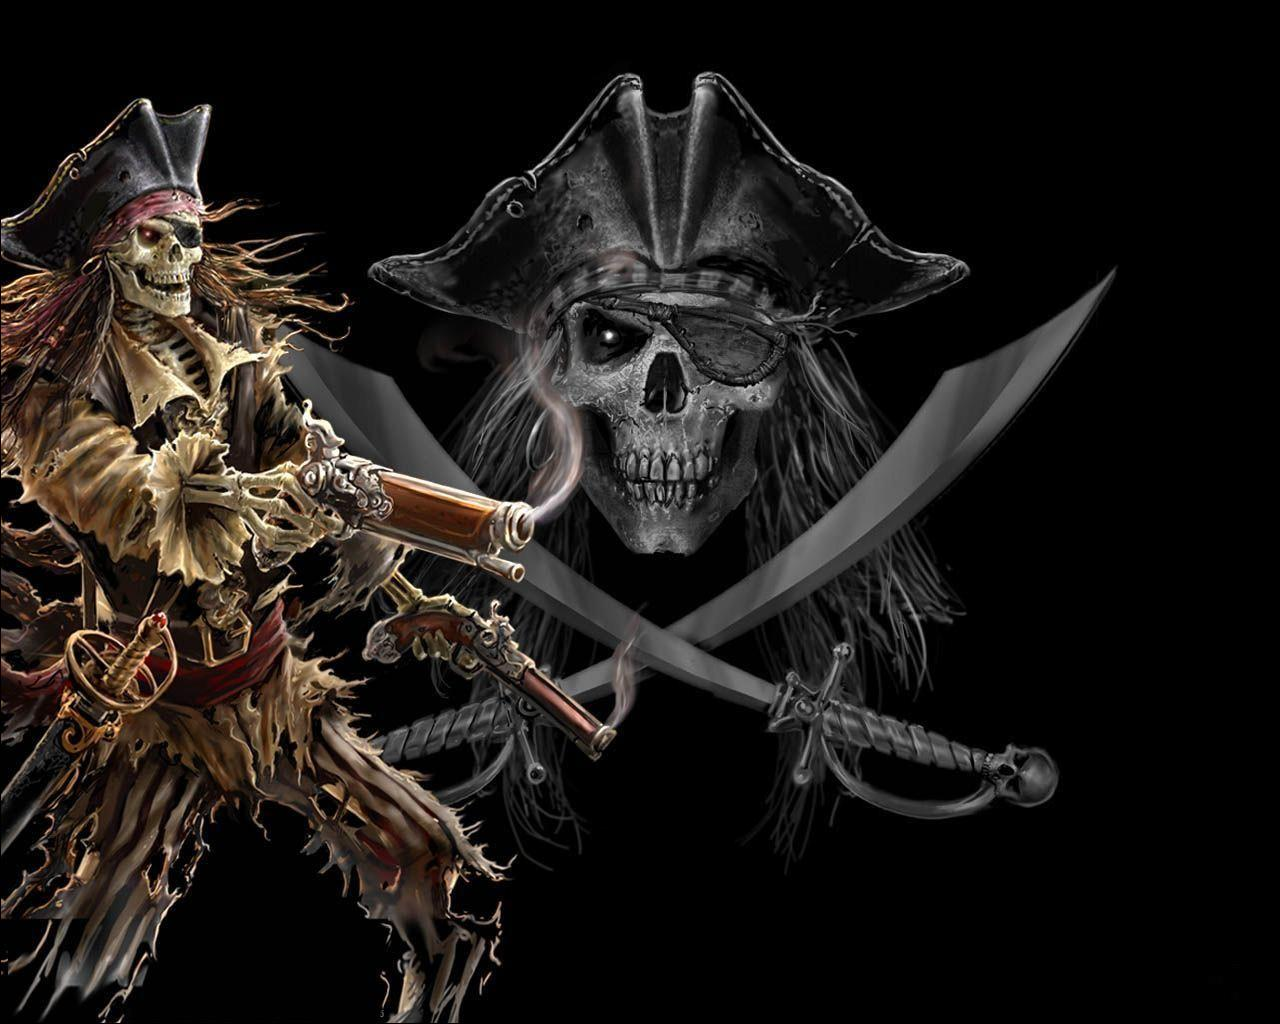 Funny wallpapers hd wallpapers desktop wallpapers pirate skull wallpaper - Pirate background ...